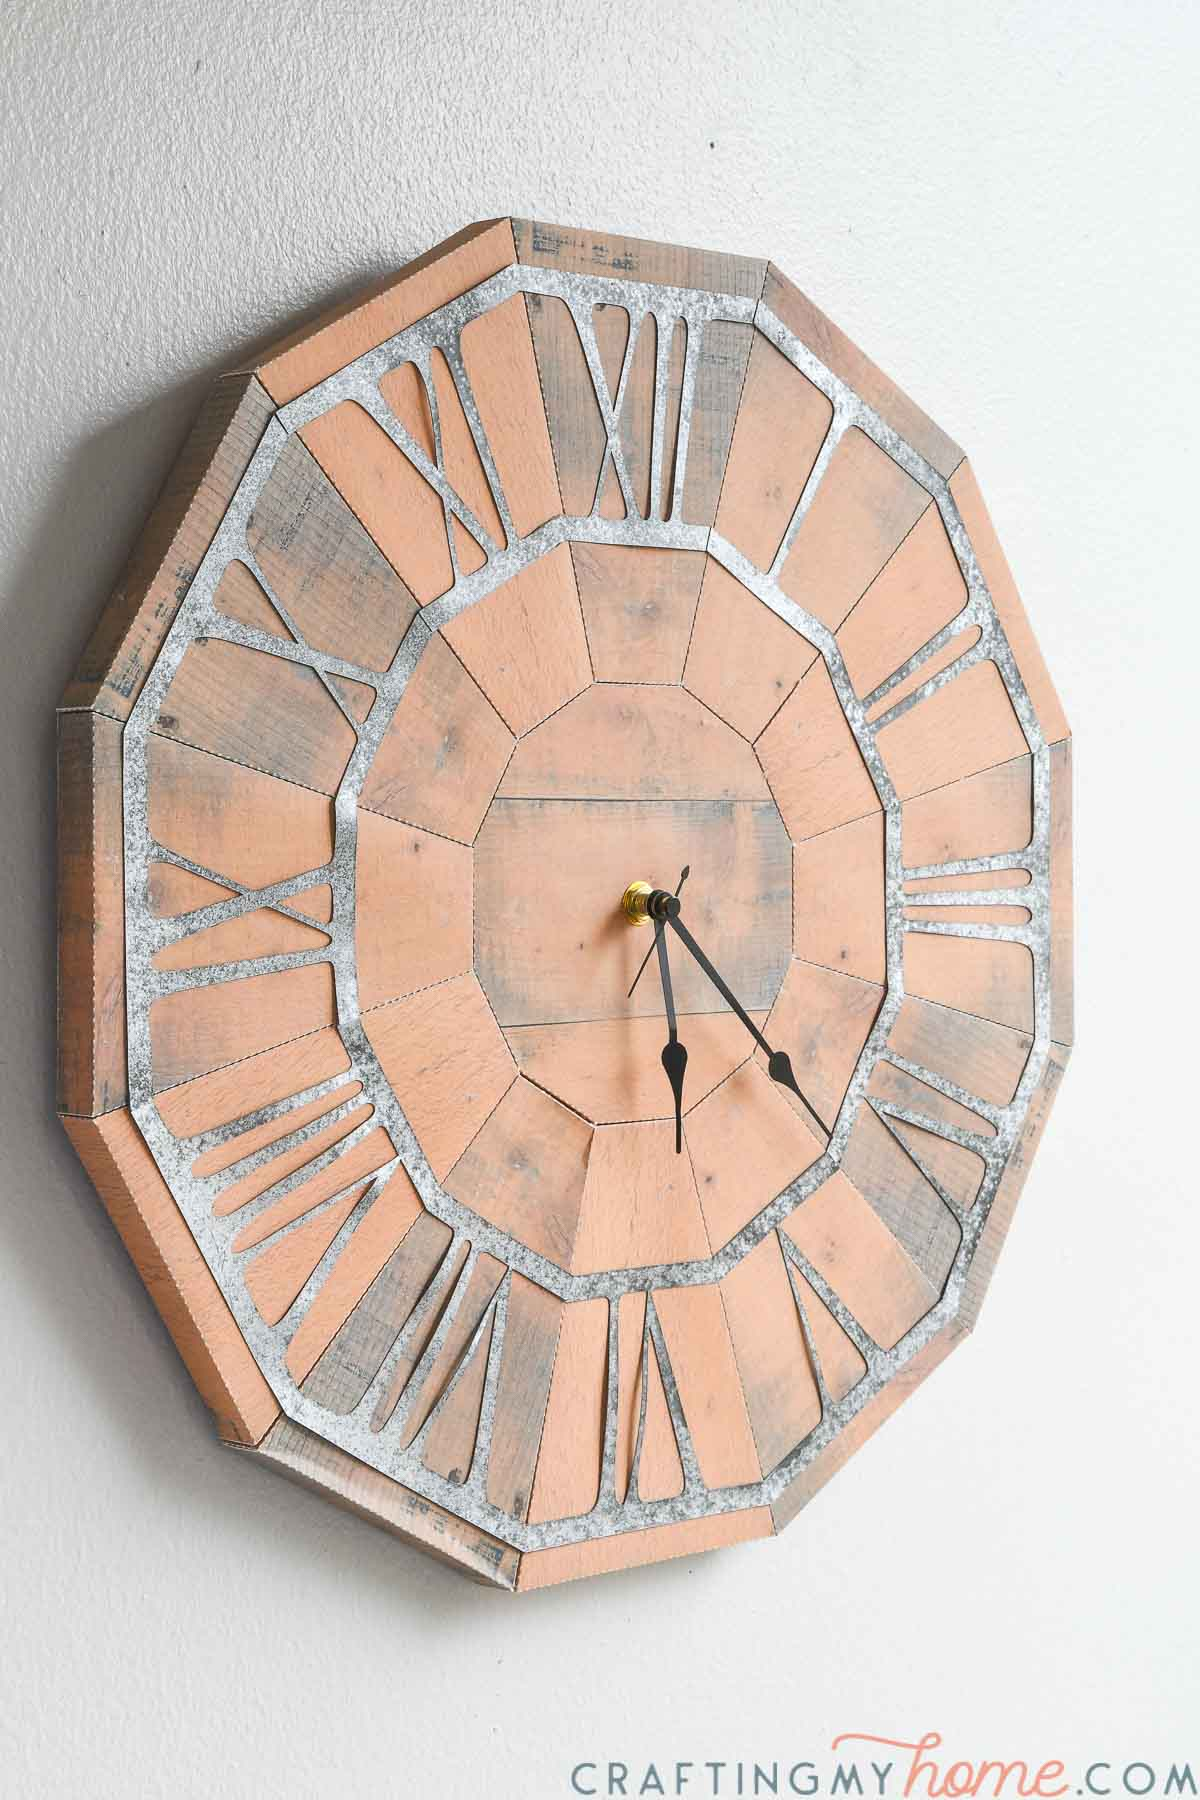 Angled photo of the pallet wood clock with working clock hands.